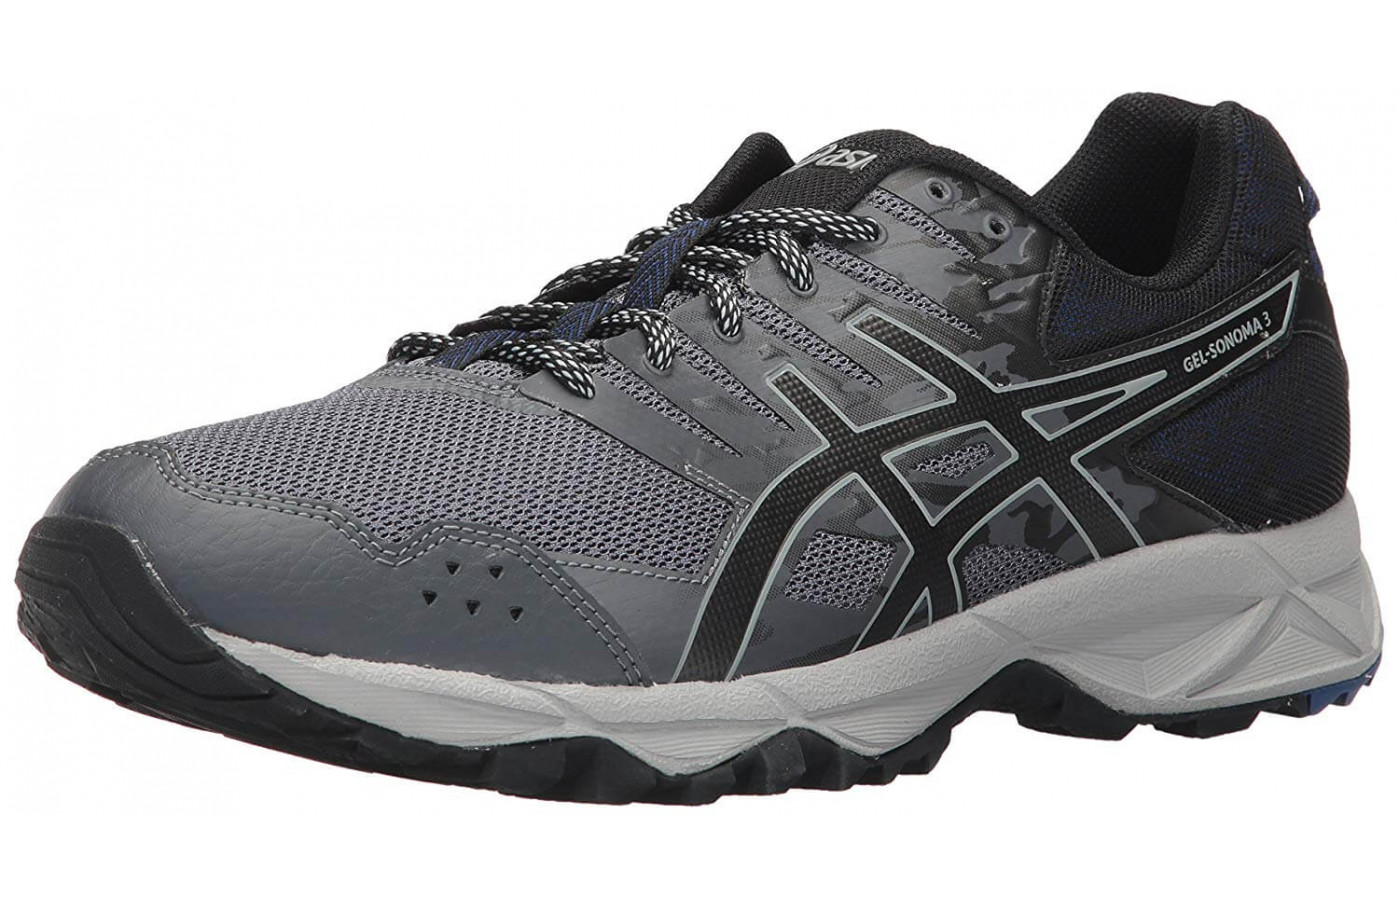 33be8b839a2e Asics Gel Sonoma 3 Reviewed - To Buy or Not in Aug 2019?